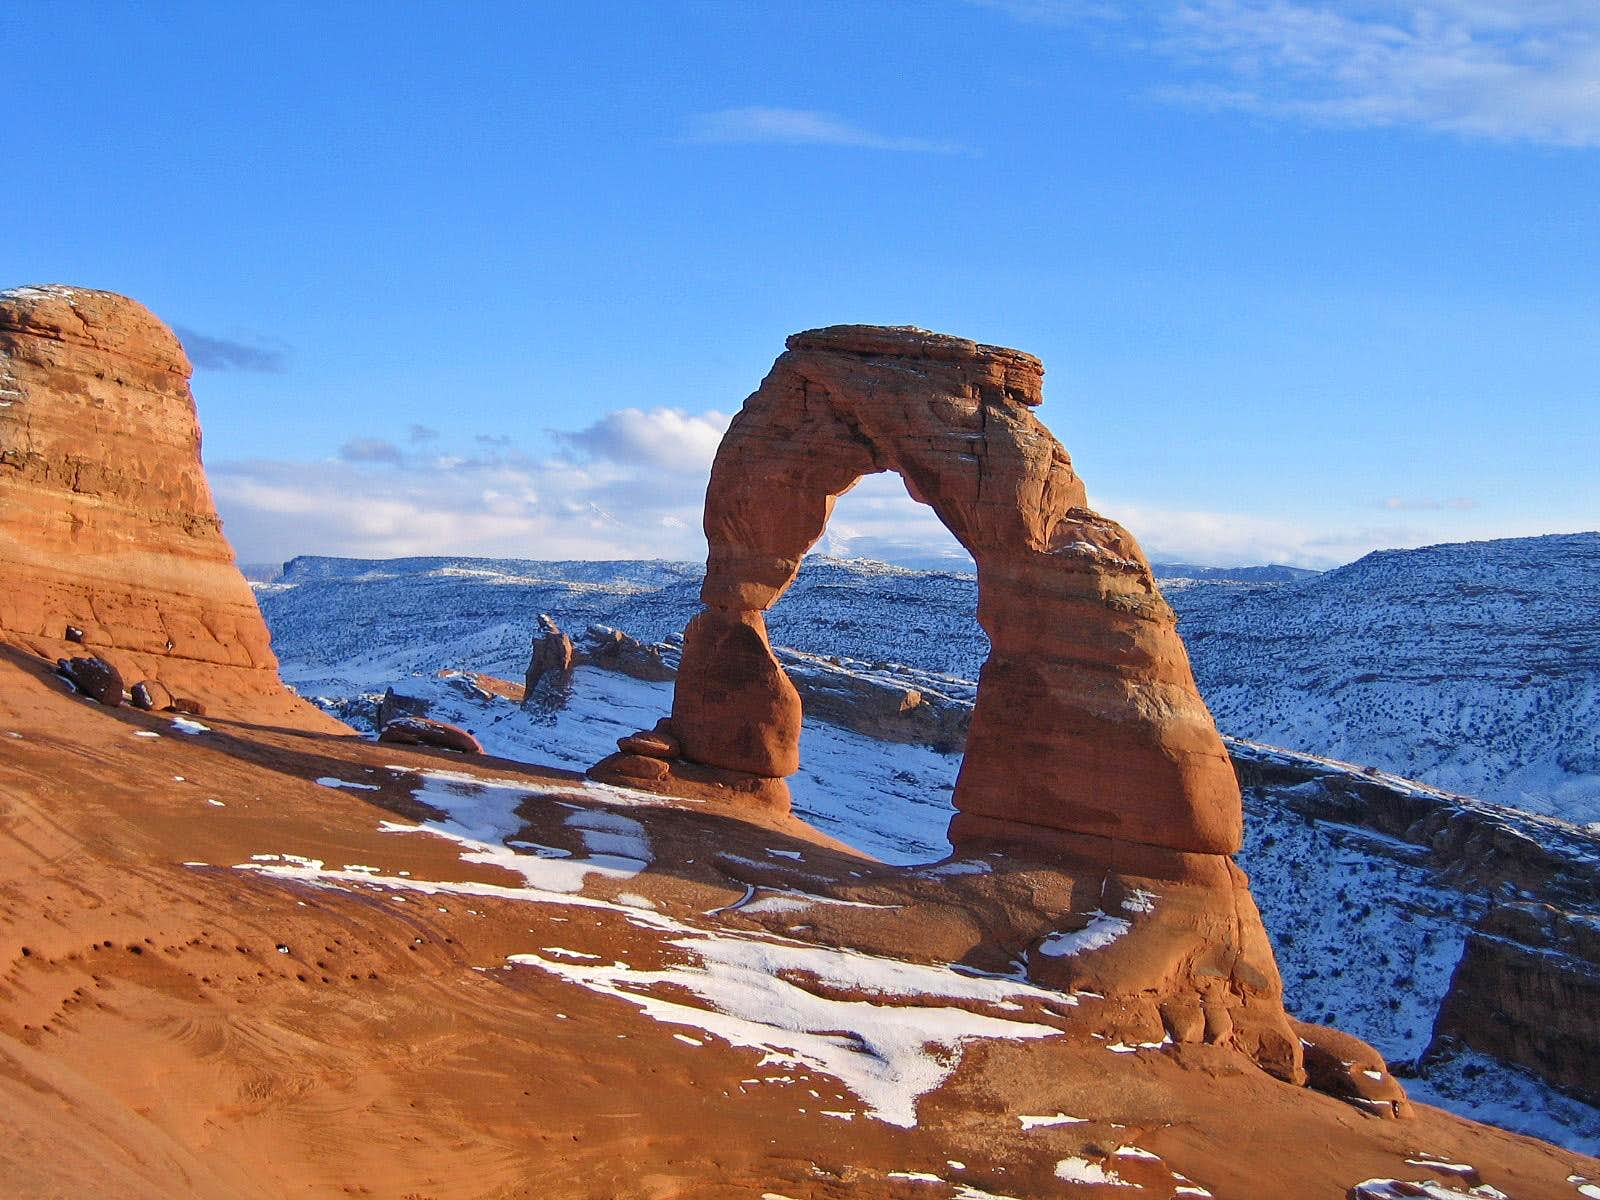 Arches & Canyonlands NP: A Quick Winter Tour